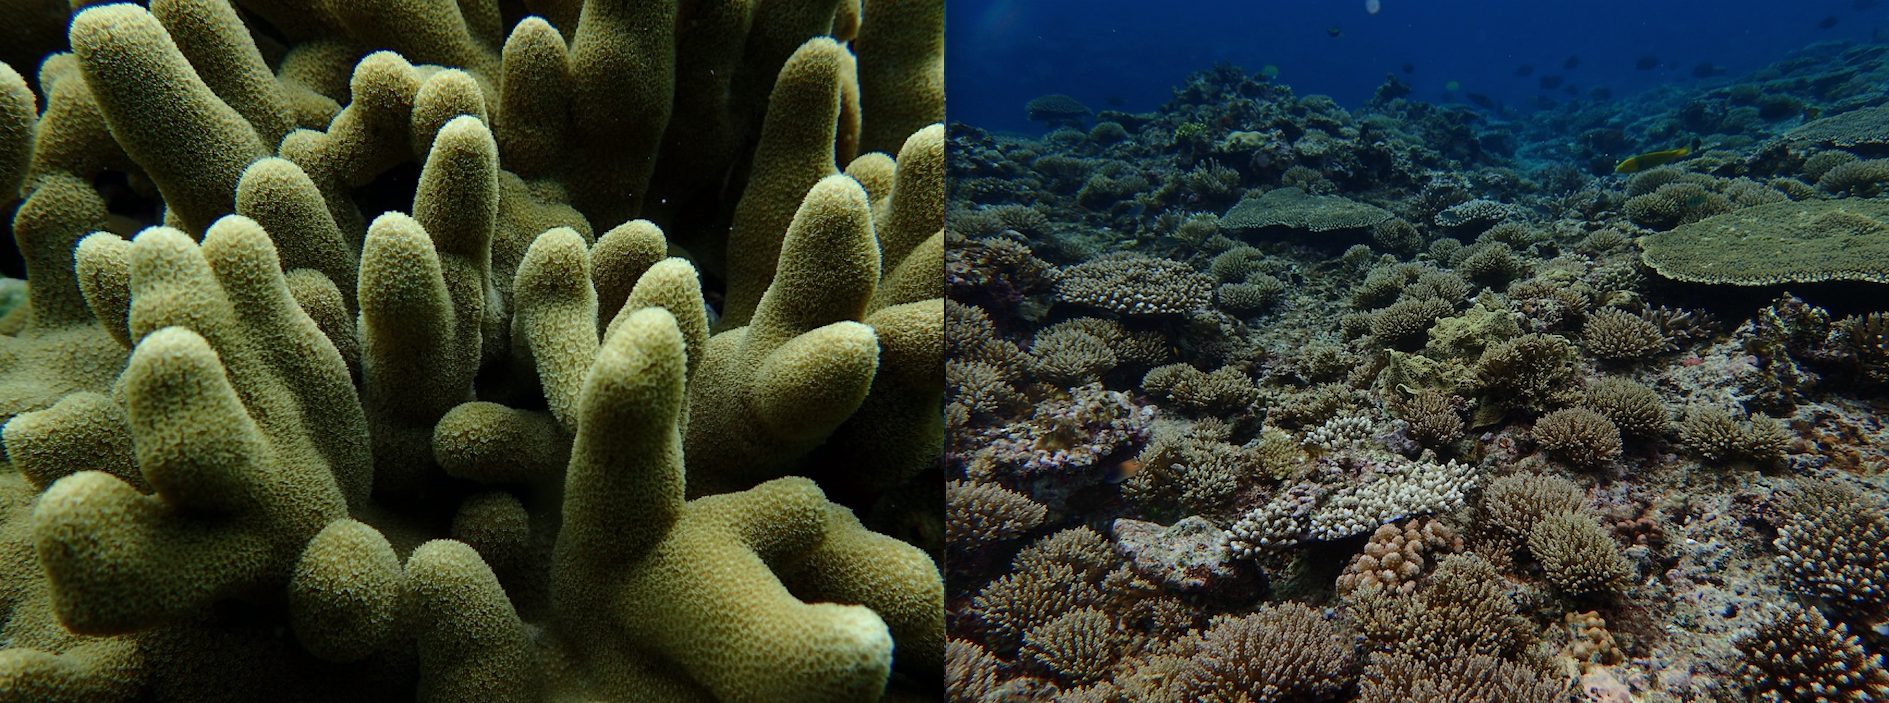 Side by side images of coral reefs. On the left is a close up image showing dozens of rounded green branches covered in thousands of tiny tentacled discs. On the right is a zoomed out image of hundreds of branching corals packed densely on the sea floor